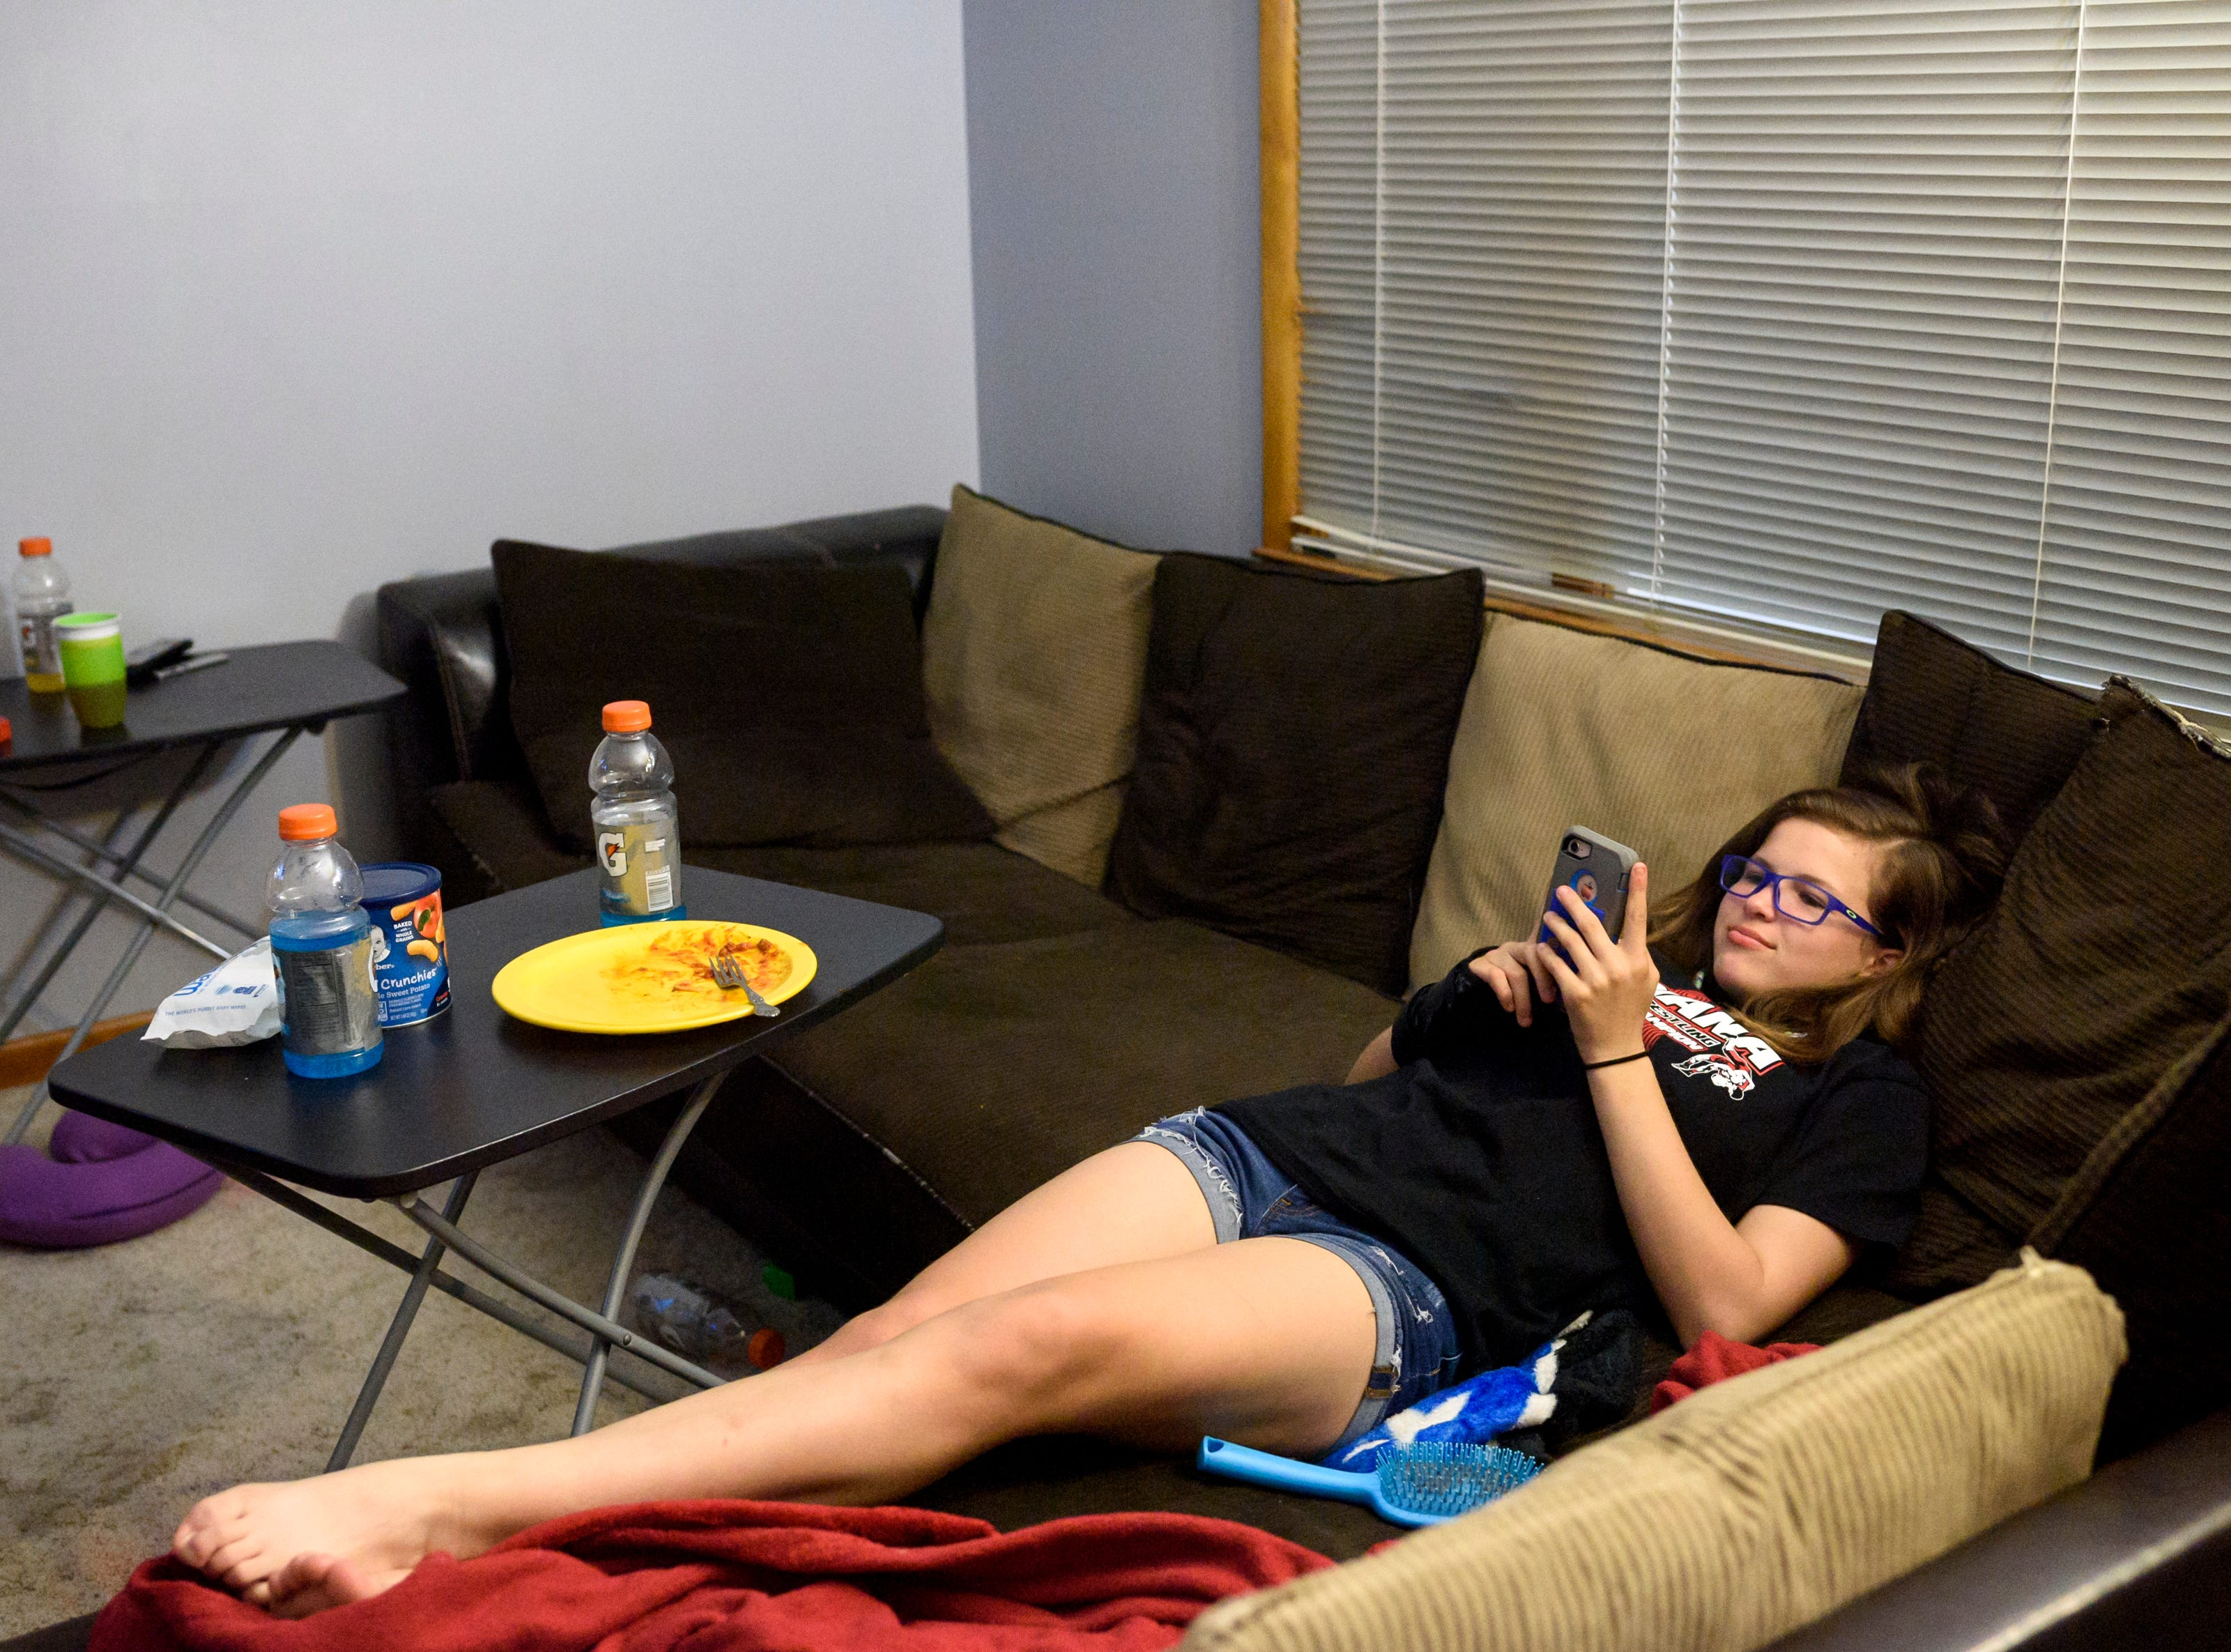 Kaylie takes a moment to relax on the couch after finishing a spaghetti dinner and before breaking out her homework, Tuesday evening, May 14, 2019. Throughout the week Kaylie juggles schoolwork with travel soccer and wrestling leaving Fridays as her only free days to relax and be a typical teenager.